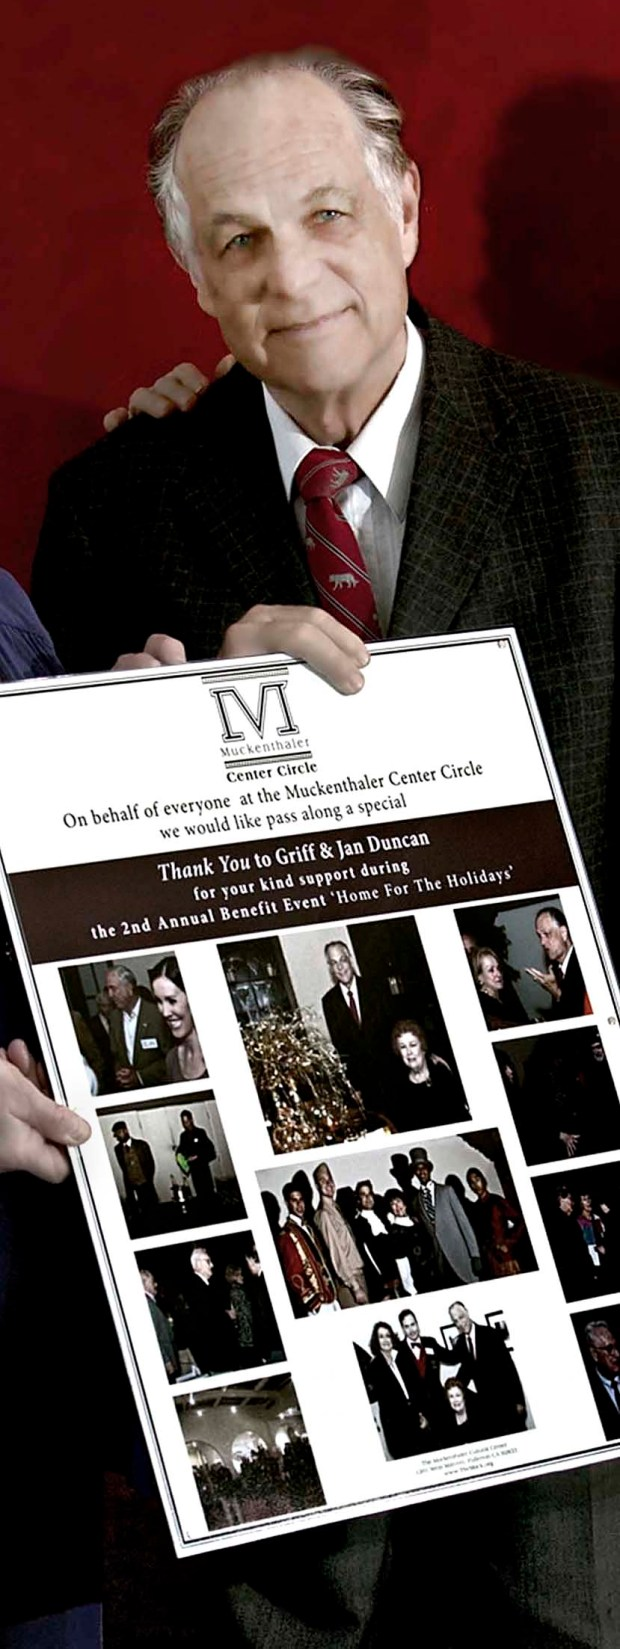 "In 2012, the Muckenthaler Center Circle acknowledged the generous support of Fullerton Civic Light Opera Directors Griff Duncan, shown, with a poster highlighting the ""Home for the Holidays Benefit."" (Courtesy of Randall Chambers)"